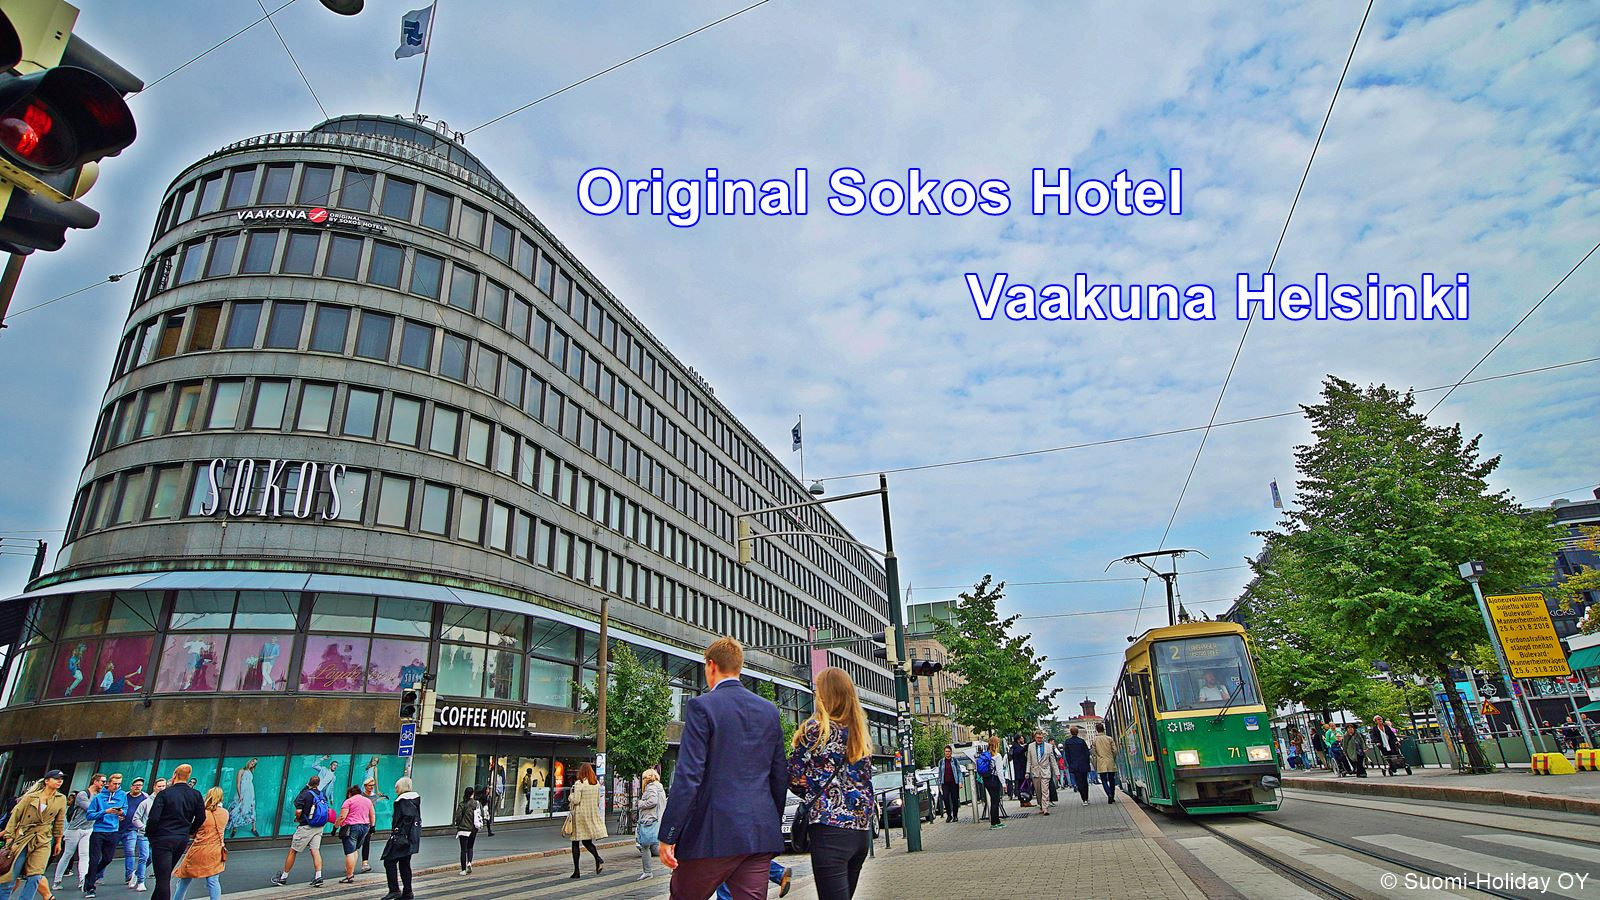 Original Sokos Hotel Vaakuna near central station